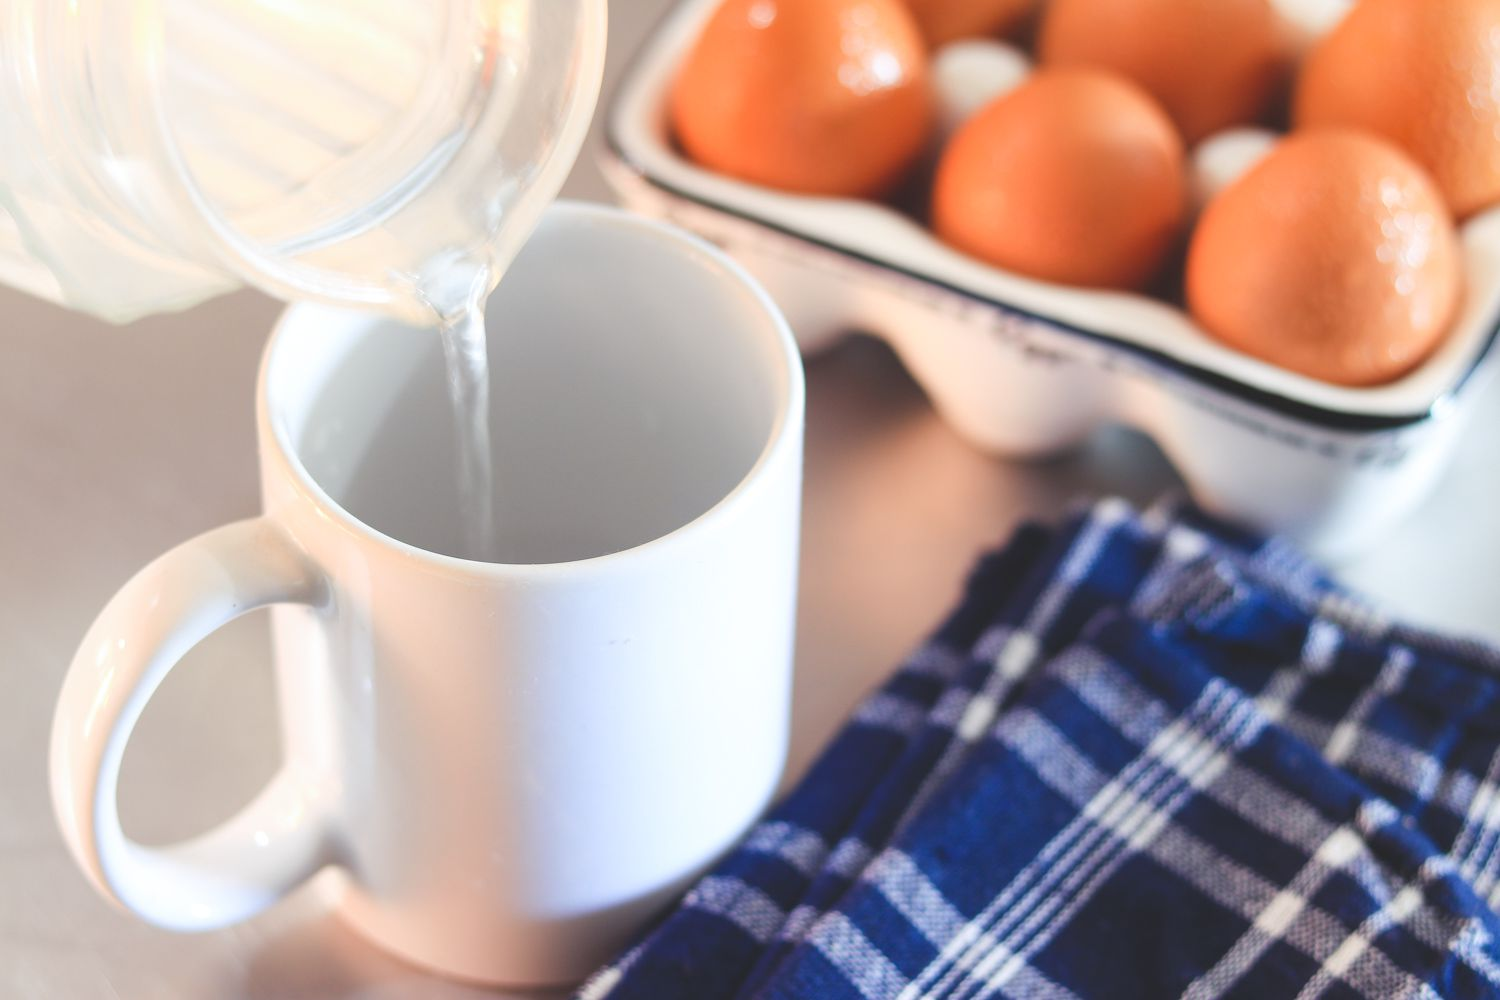 Add Water To Microwavable Cup